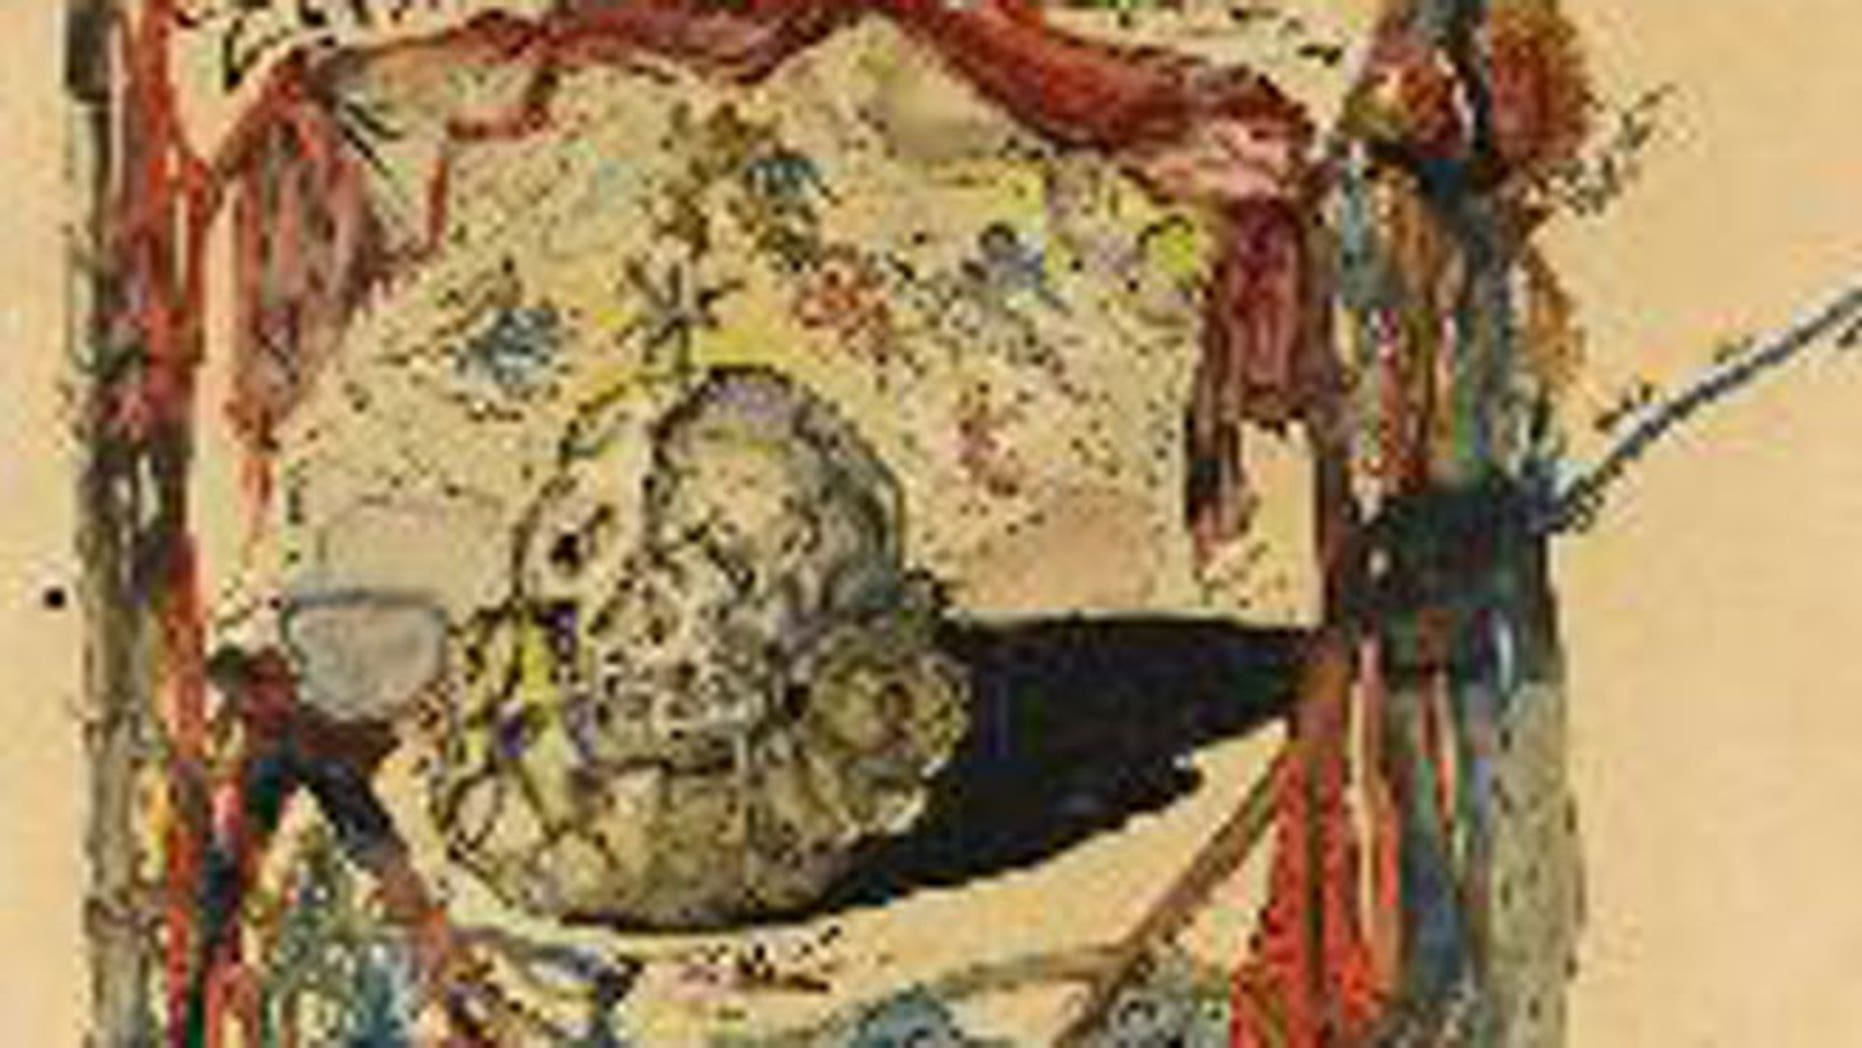 """This image provided by the New York Police Department shows a 1949 Salvador Dali painting, called """"Cartel des Don Juan Tenorio."""" inaugural exhibition."""